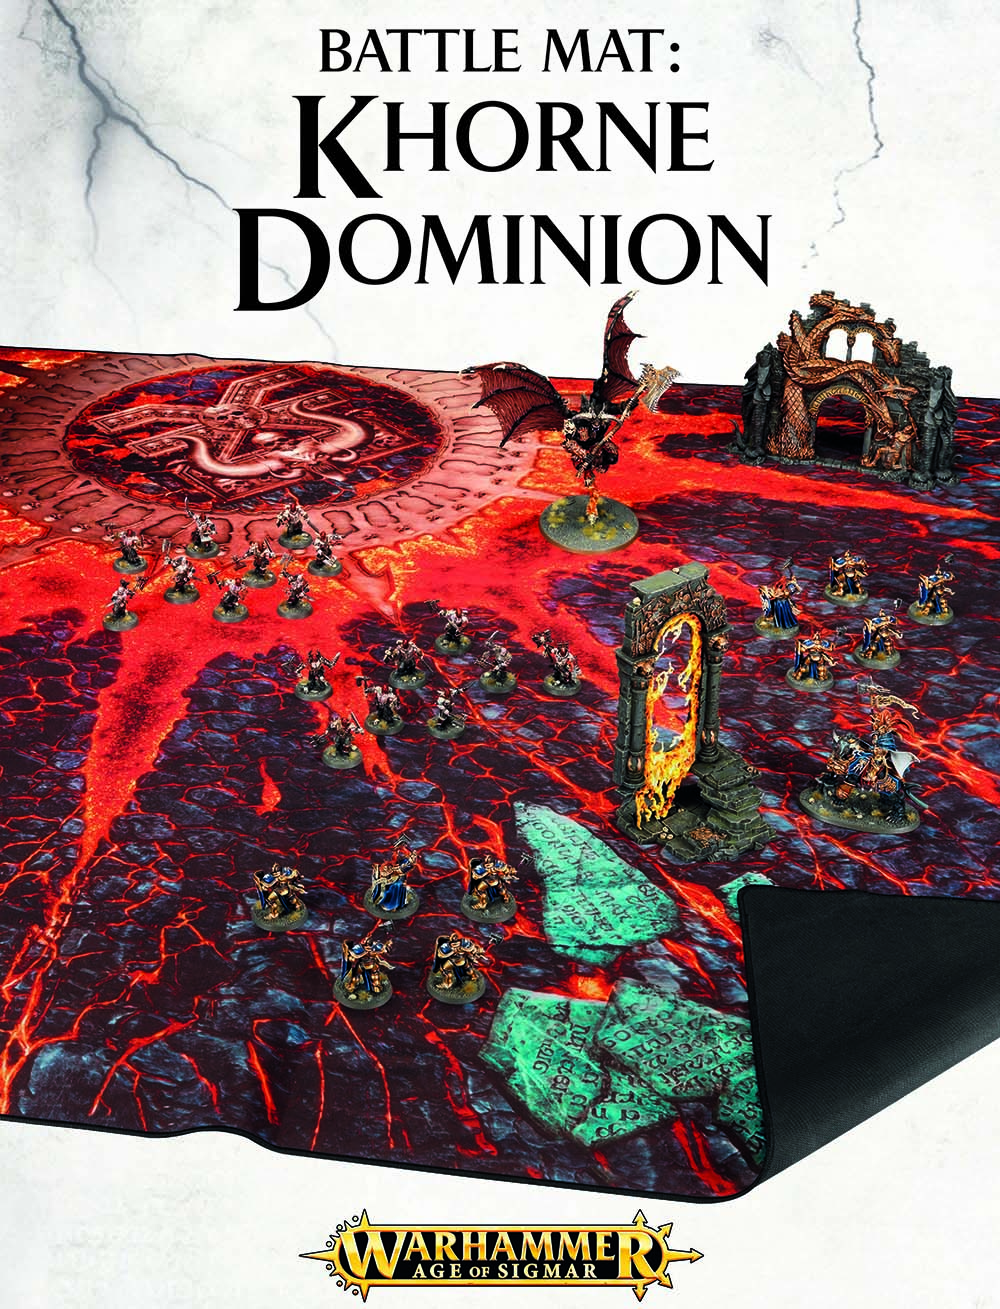 Warhammer Age of Sigmar: Battle Mat: Khorne Dominion